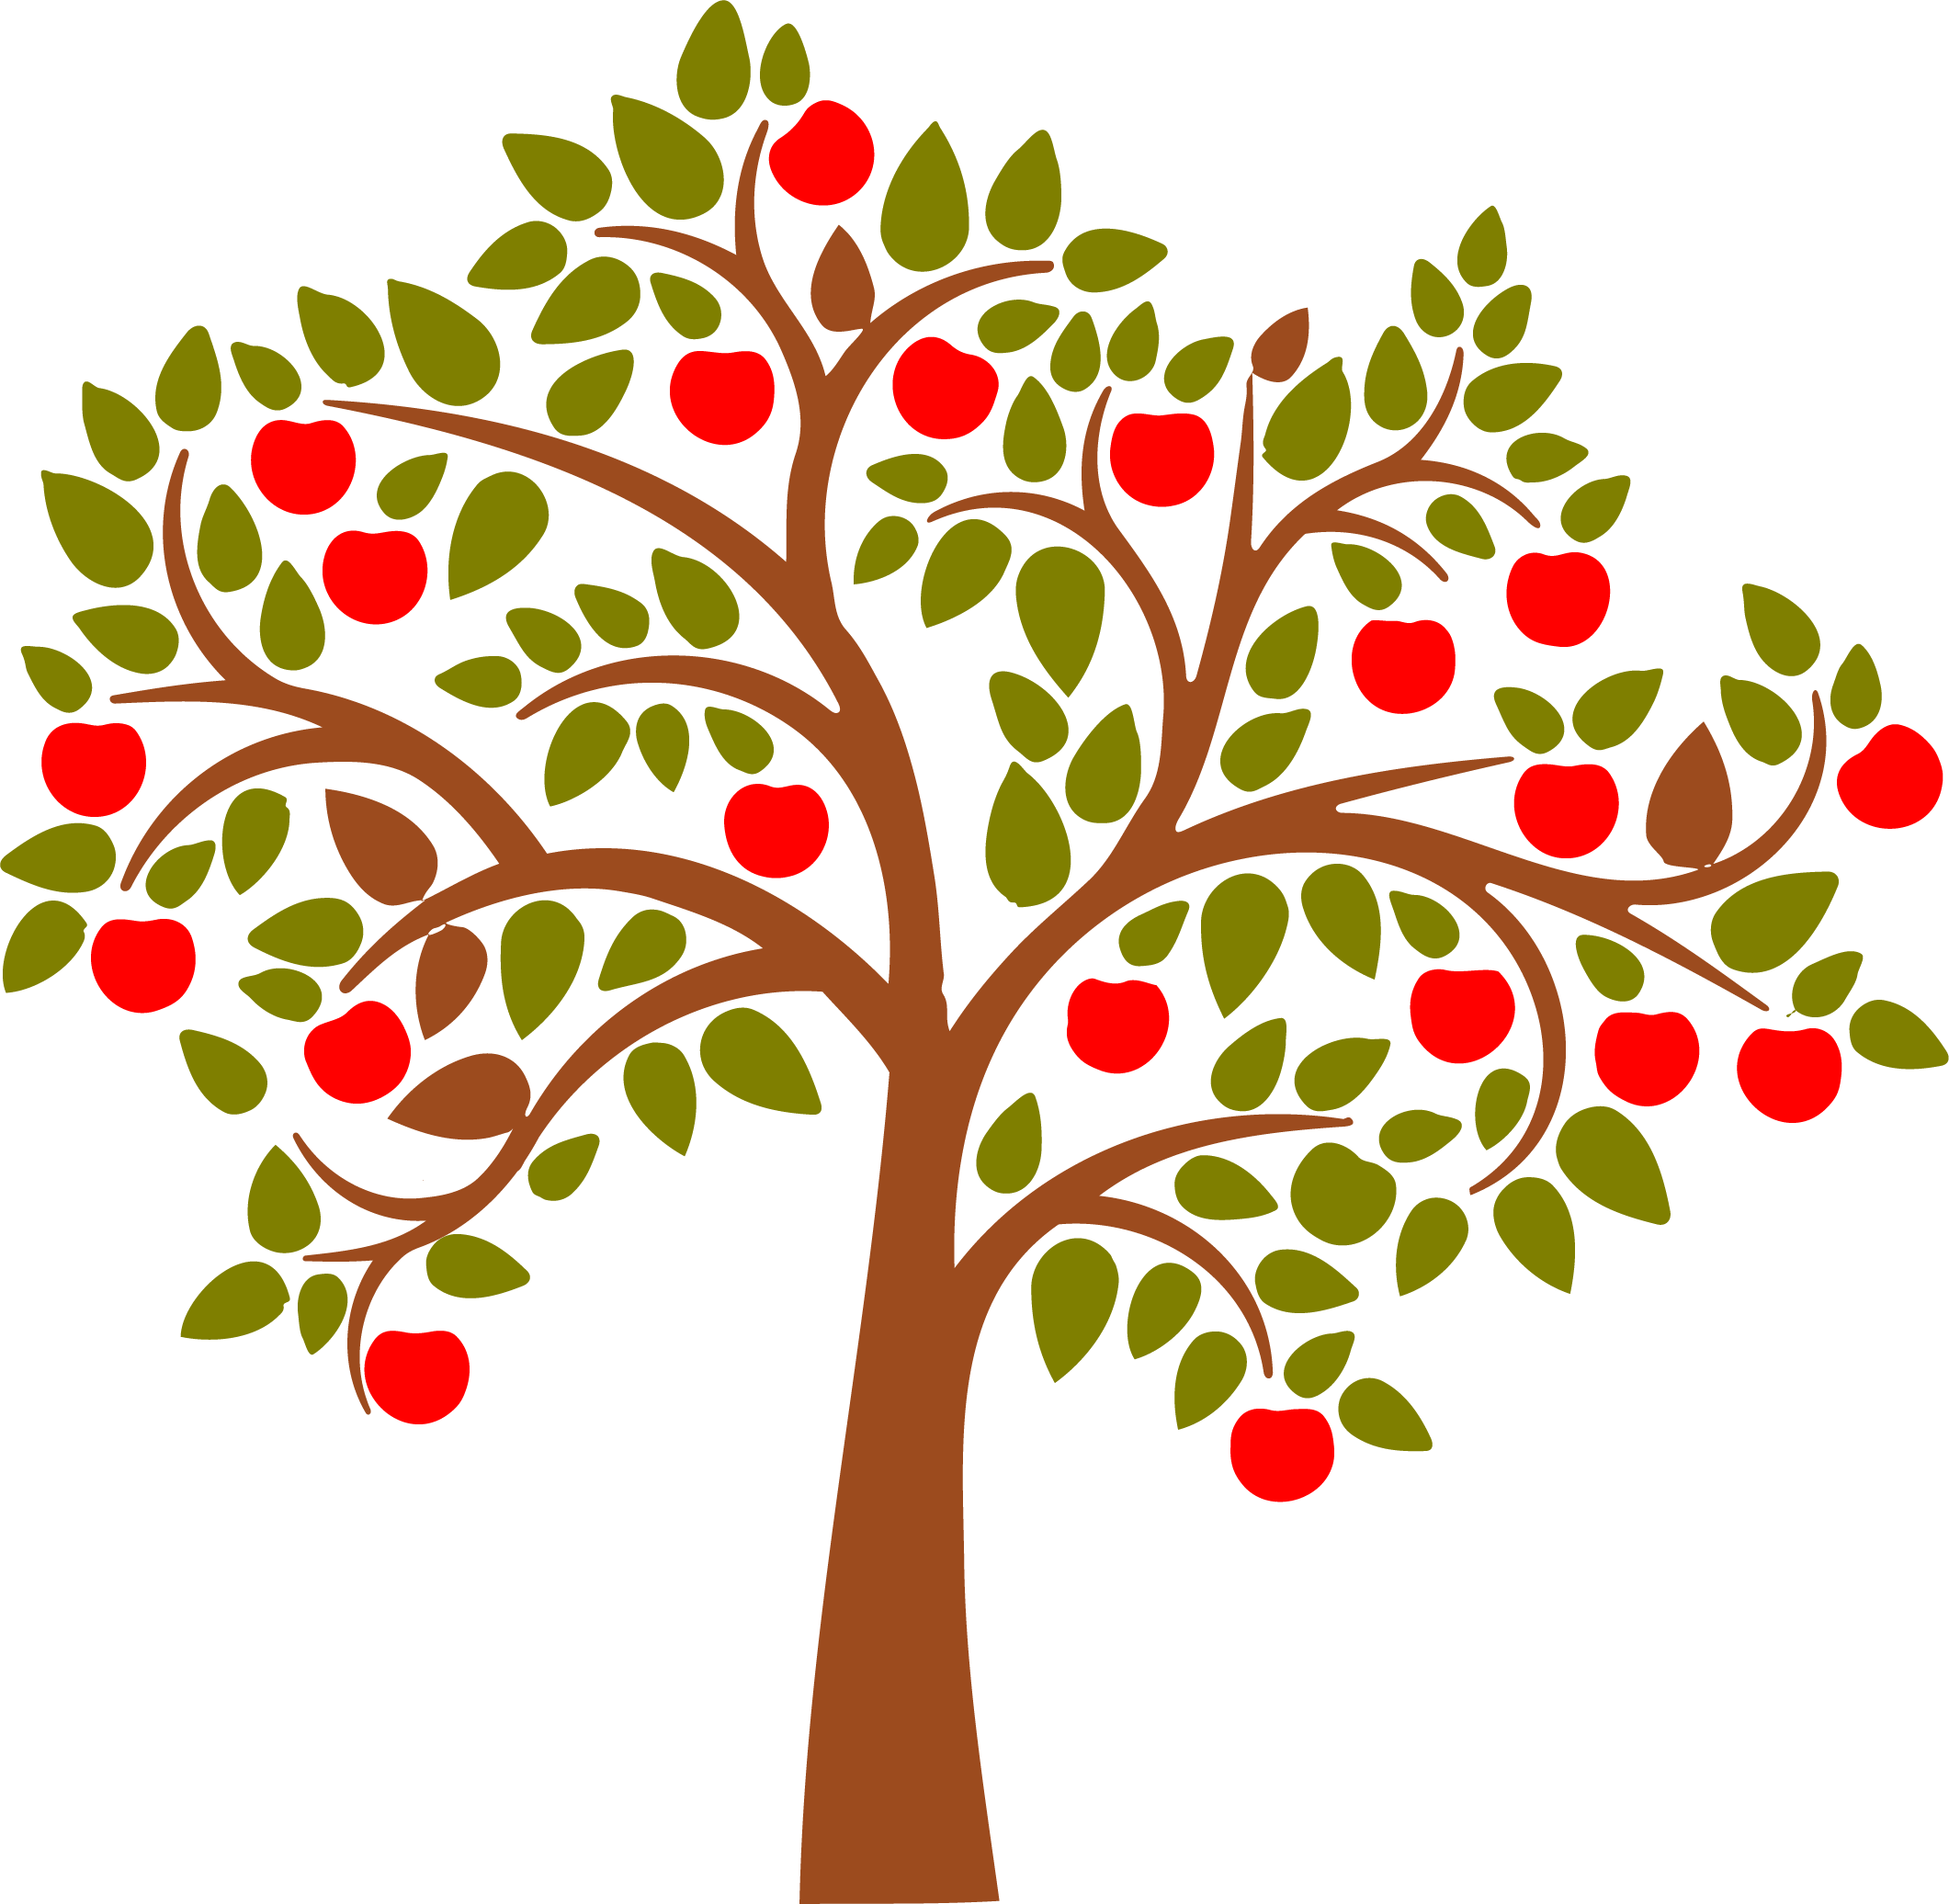 Colored apple silhouette clipart graphic library library 28+ Collection of Apple Tree Drawing Images | High quality, free ... graphic library library